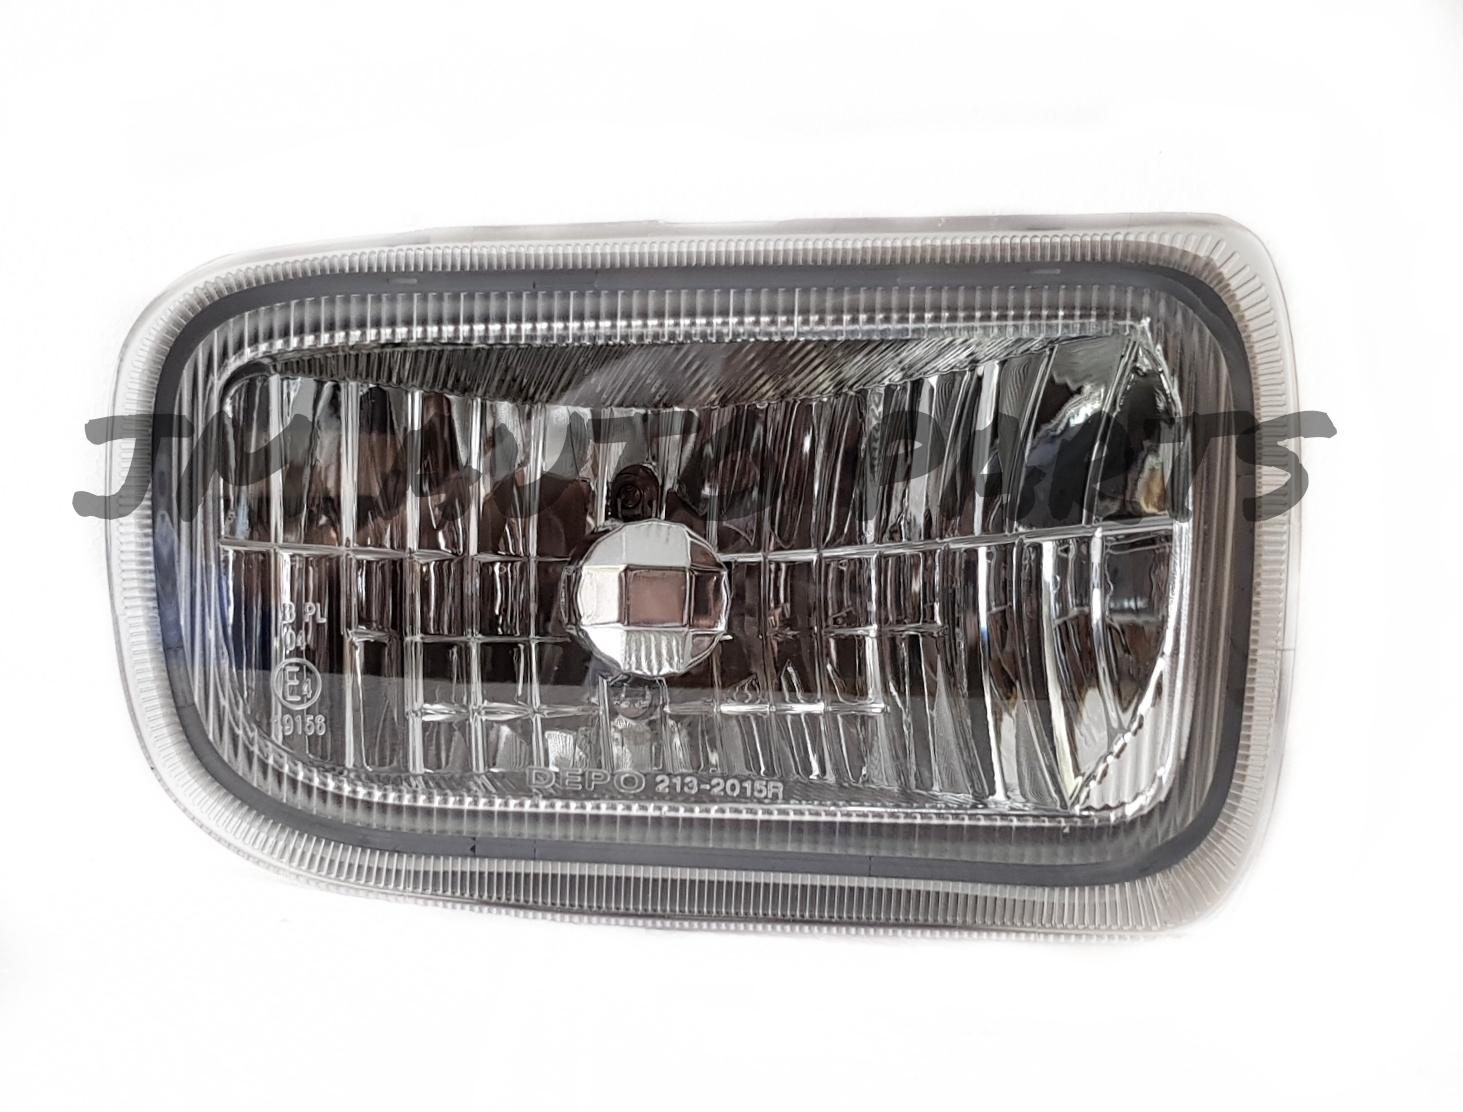 Tail Light Assembly For Sale Lens Online Brands Prices Headlight Fog Hid Xenon Conversion Relay Wire Harness Kit Ebay Isuzu Crosswind 2000 2005 Right Passenger Side Lamp Bumper